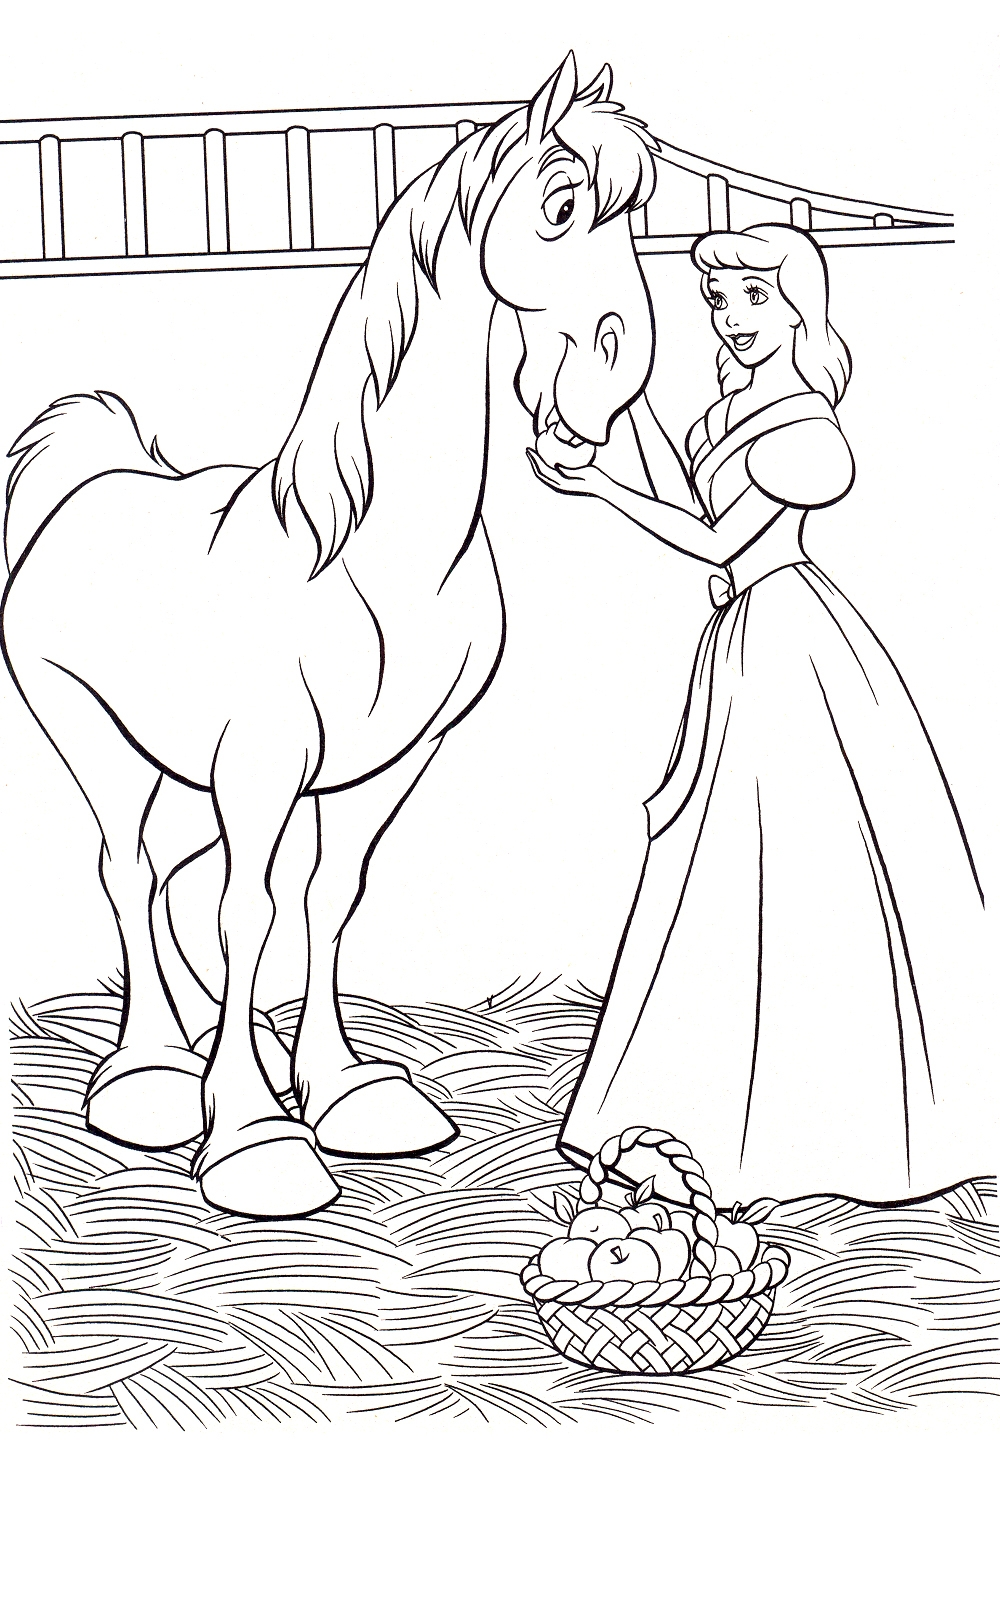 image regarding Printable Cinderella Coloring Pages identified as No cost Printable Cinderella Coloring Web pages For Children